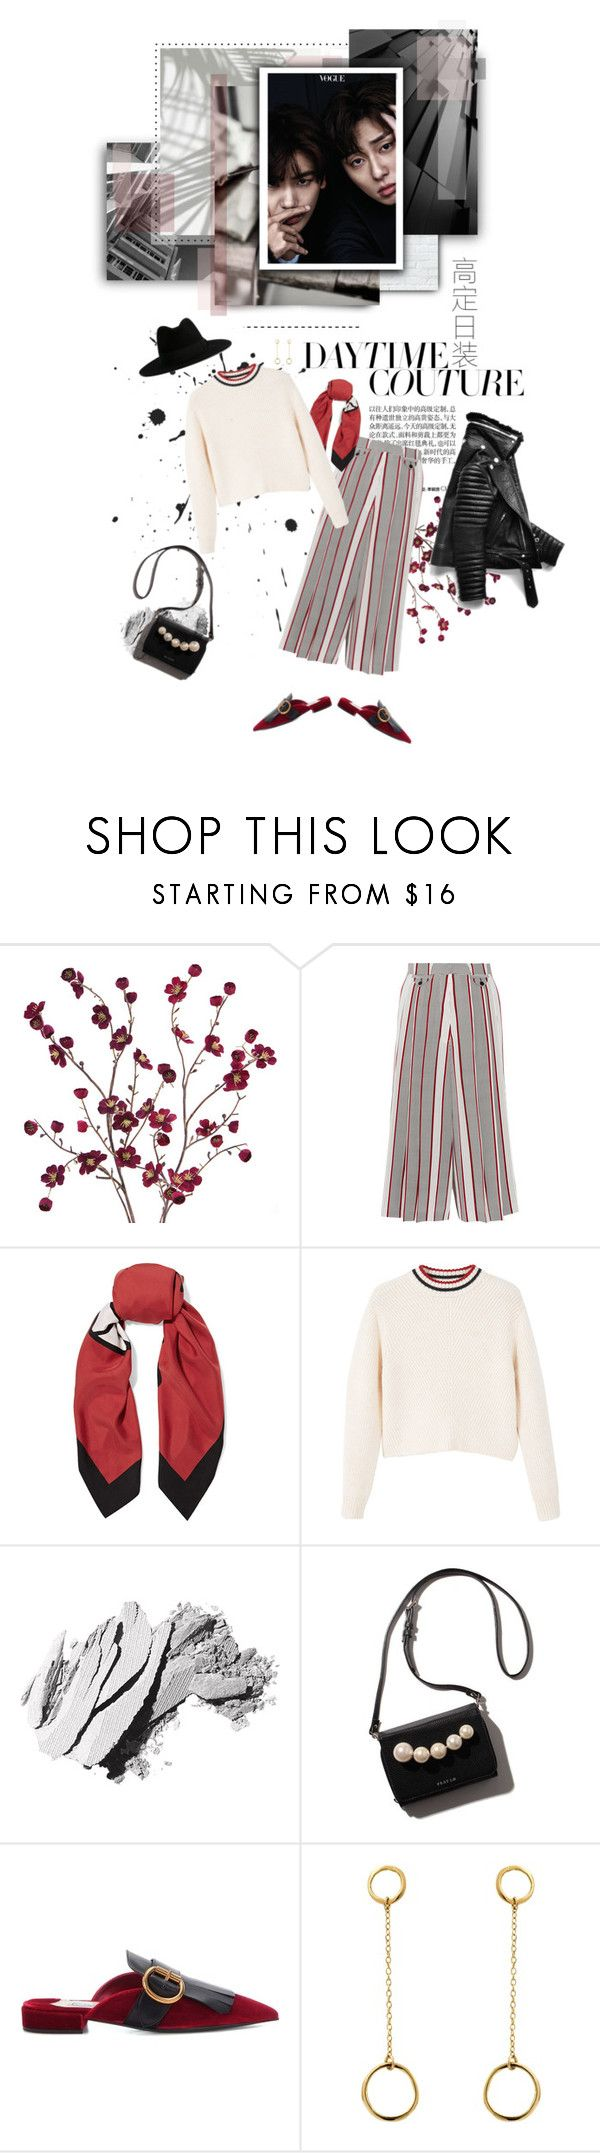 """""""It's Definitely You"""" by anny-bcc ❤ liked on Polyvore featuring Cost Plus World Market, Victoria Beckham, Gucci, MANGO, Bobbi Brown Cosmetics, Prada, Satomi Kawakita and Yves Saint Laurent"""